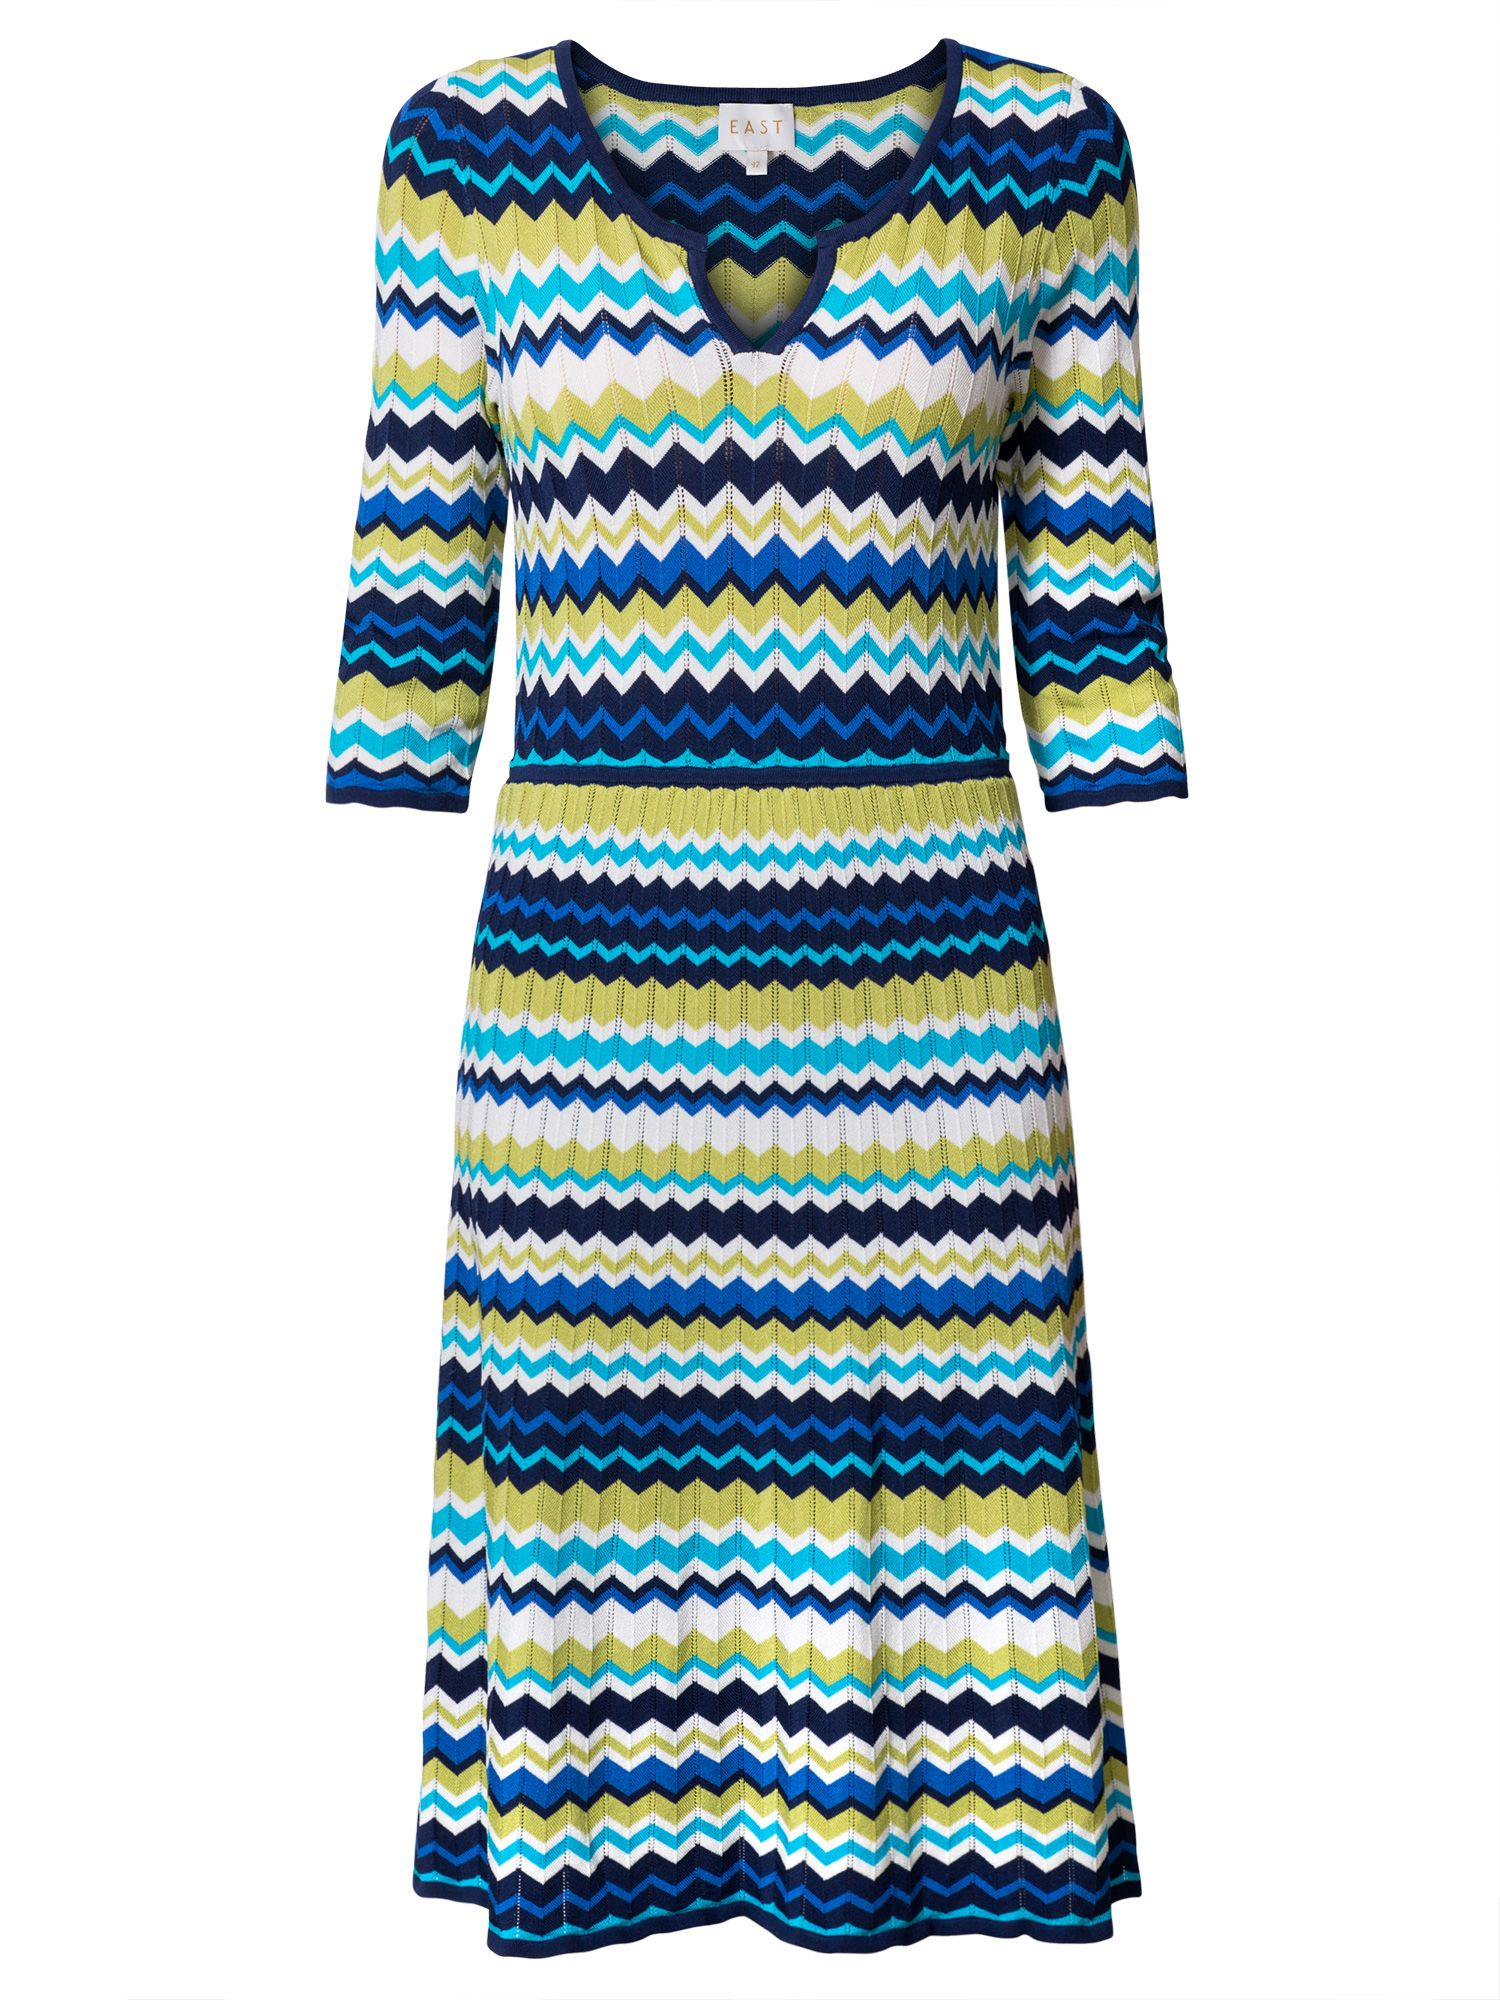 East Zig Zag Dress, Multi-Coloured